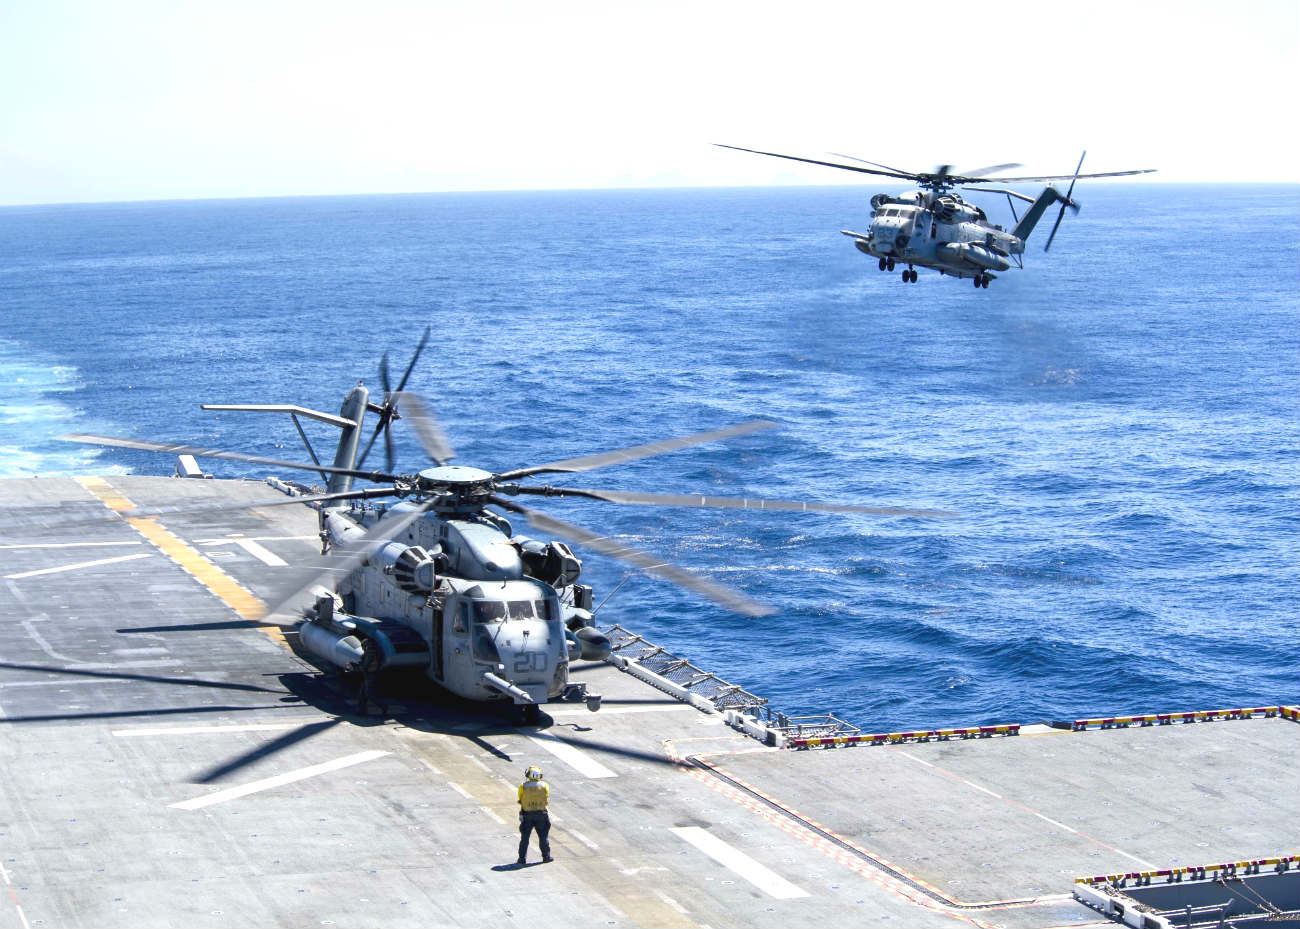 CH-53 Helicopters Landing on carrier